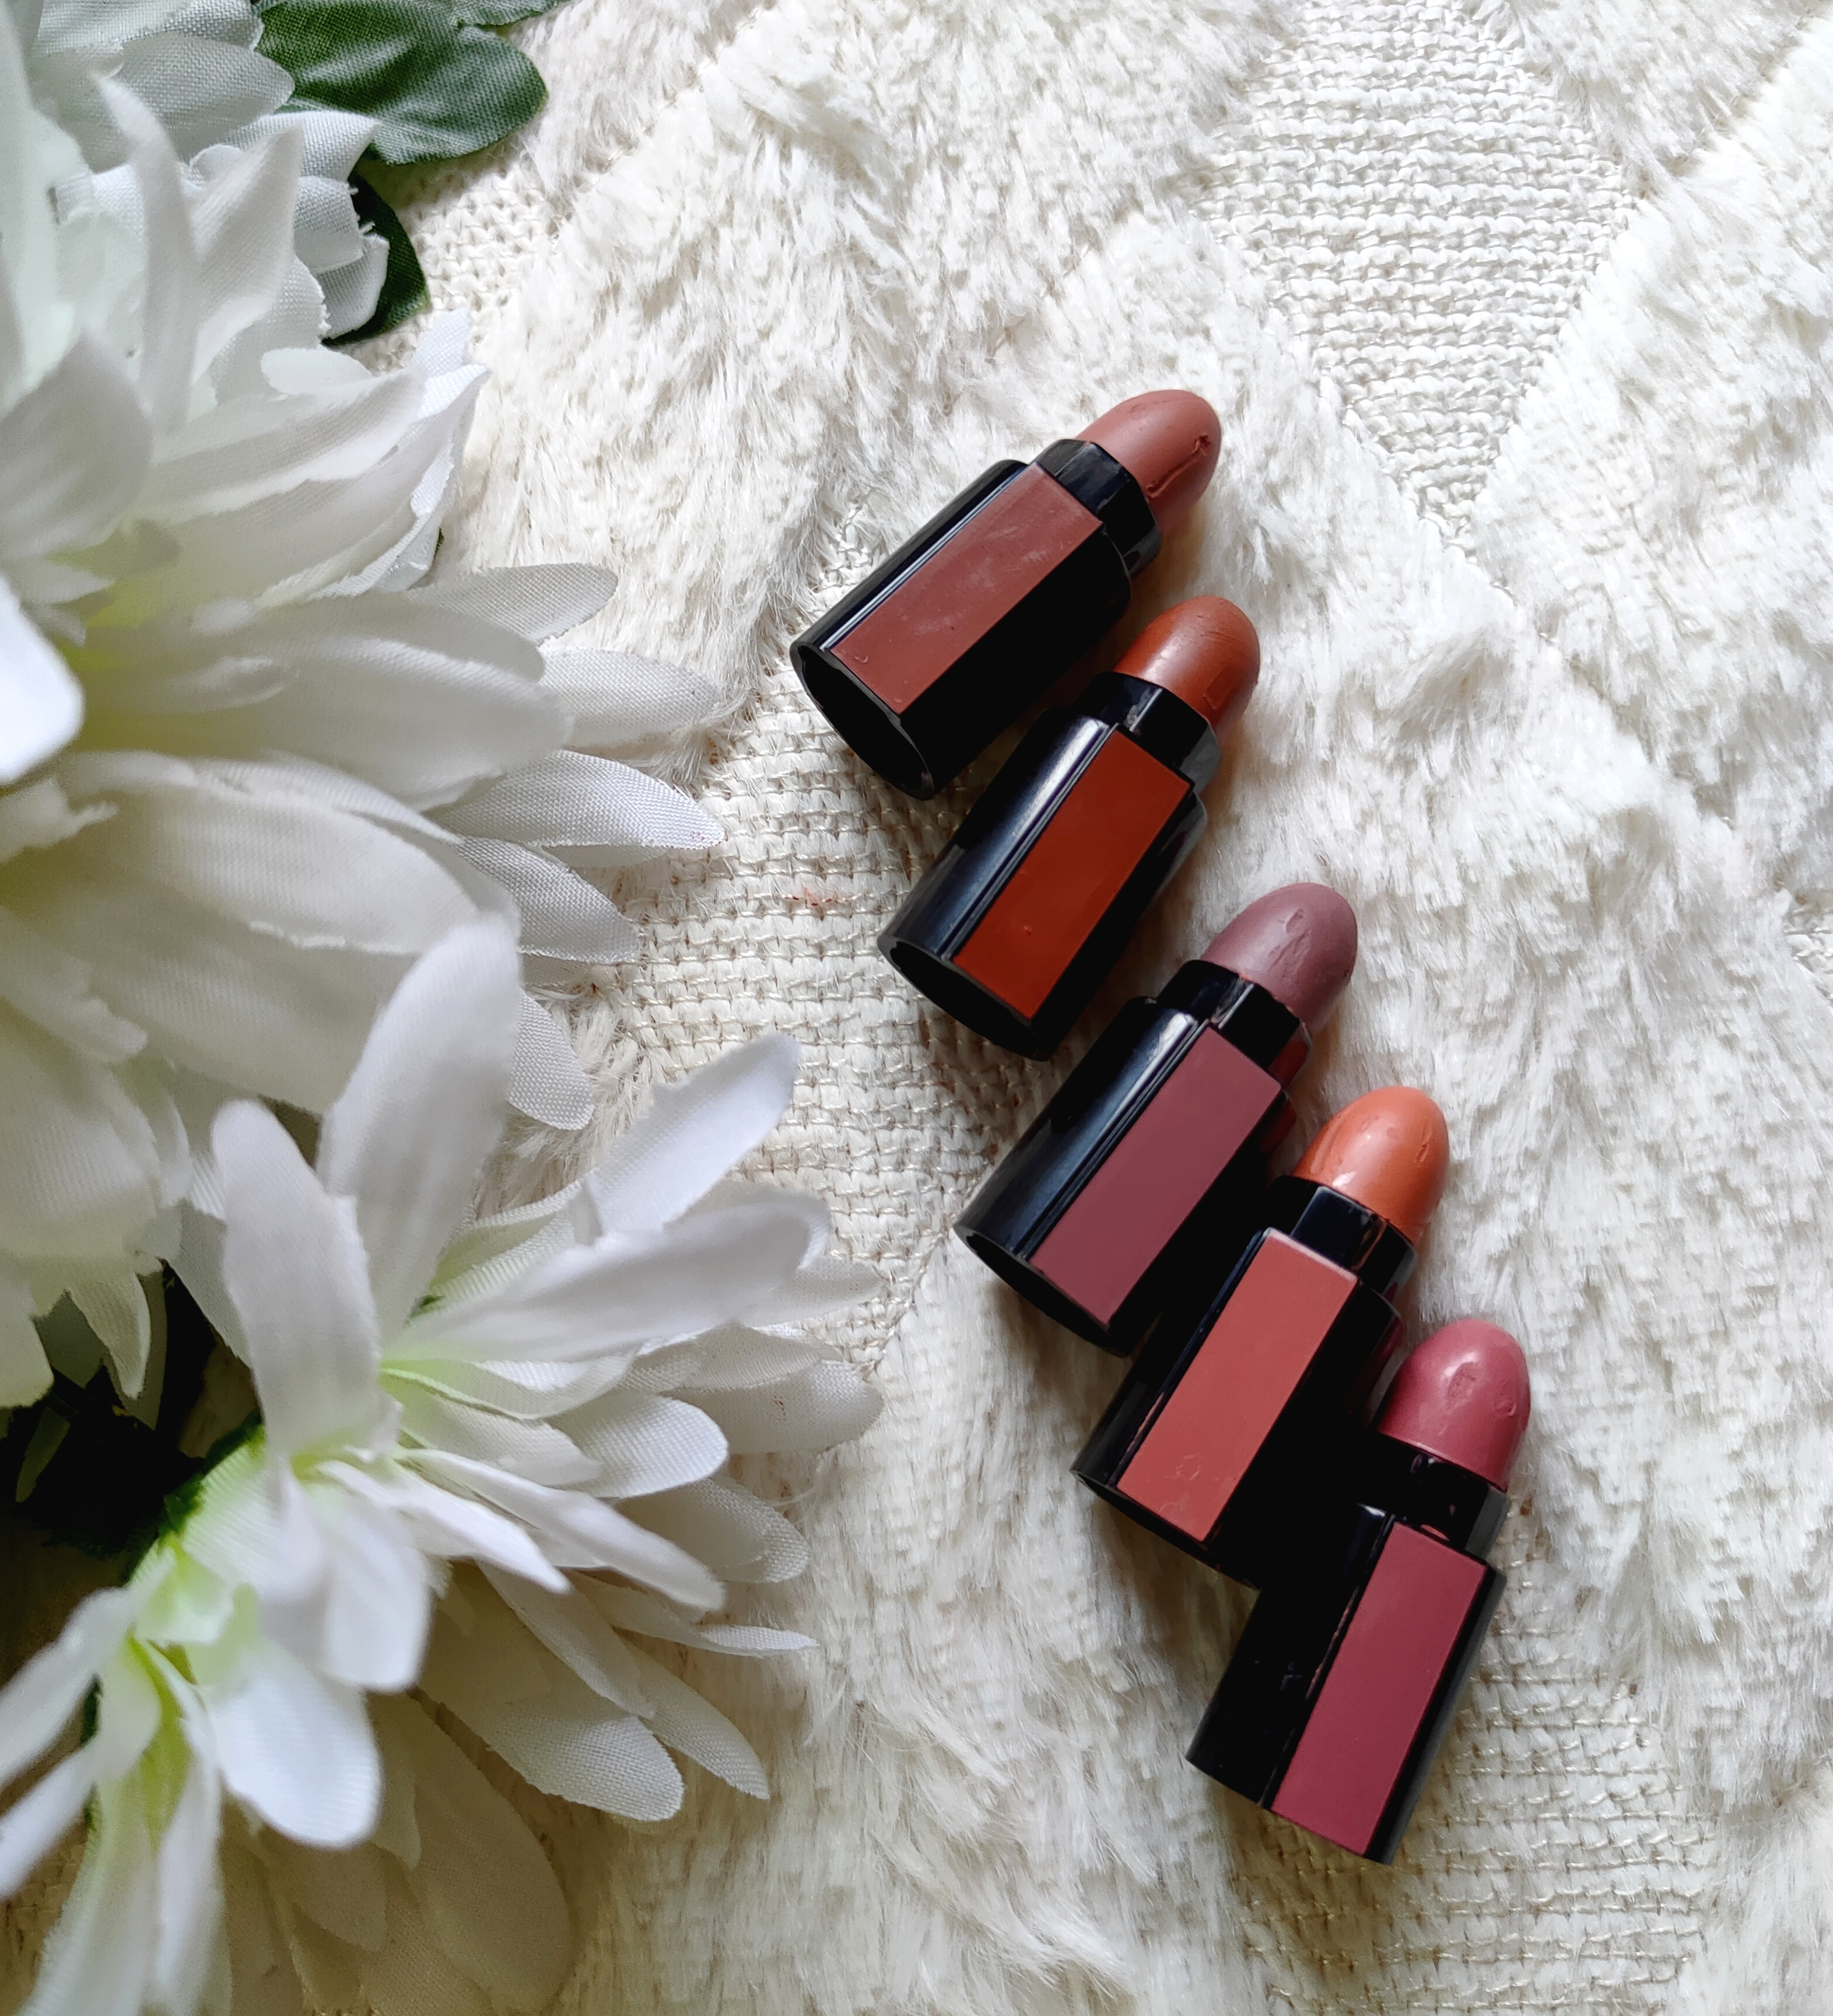 Renee Fab 5 in 1 Nude Lipstick Review